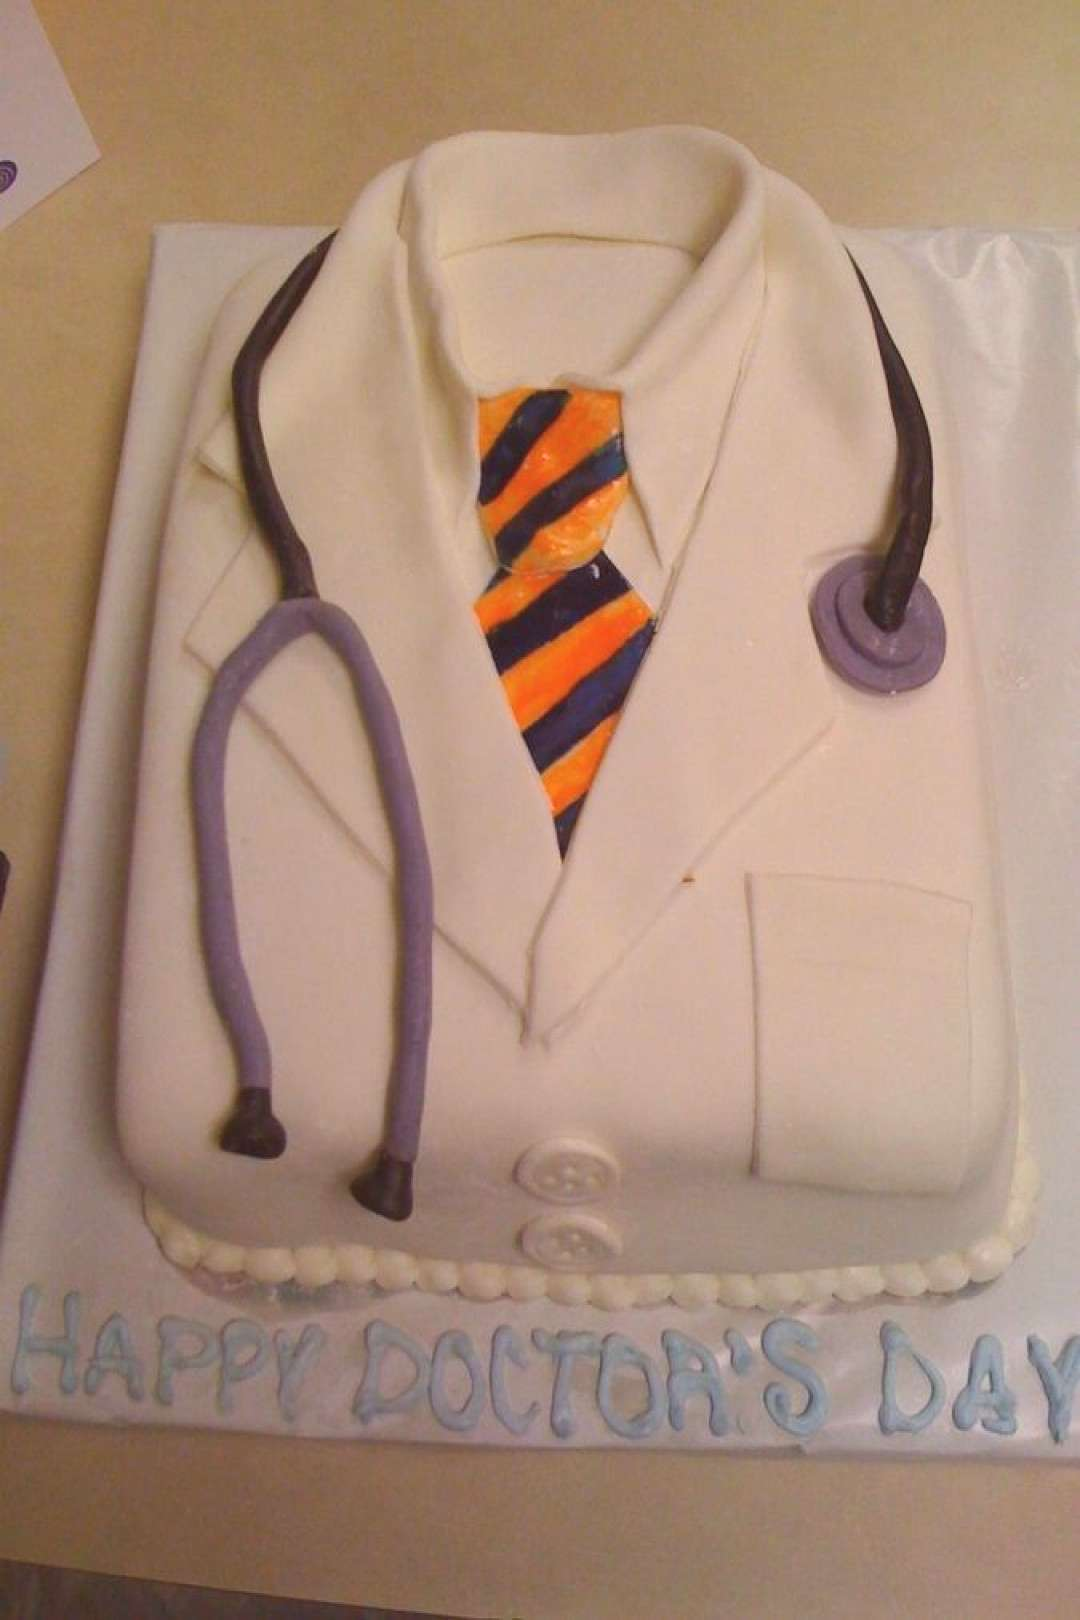 I did this cake for my boss on doctor's day.  Thanks for all the wonderful ideas... I did this cake